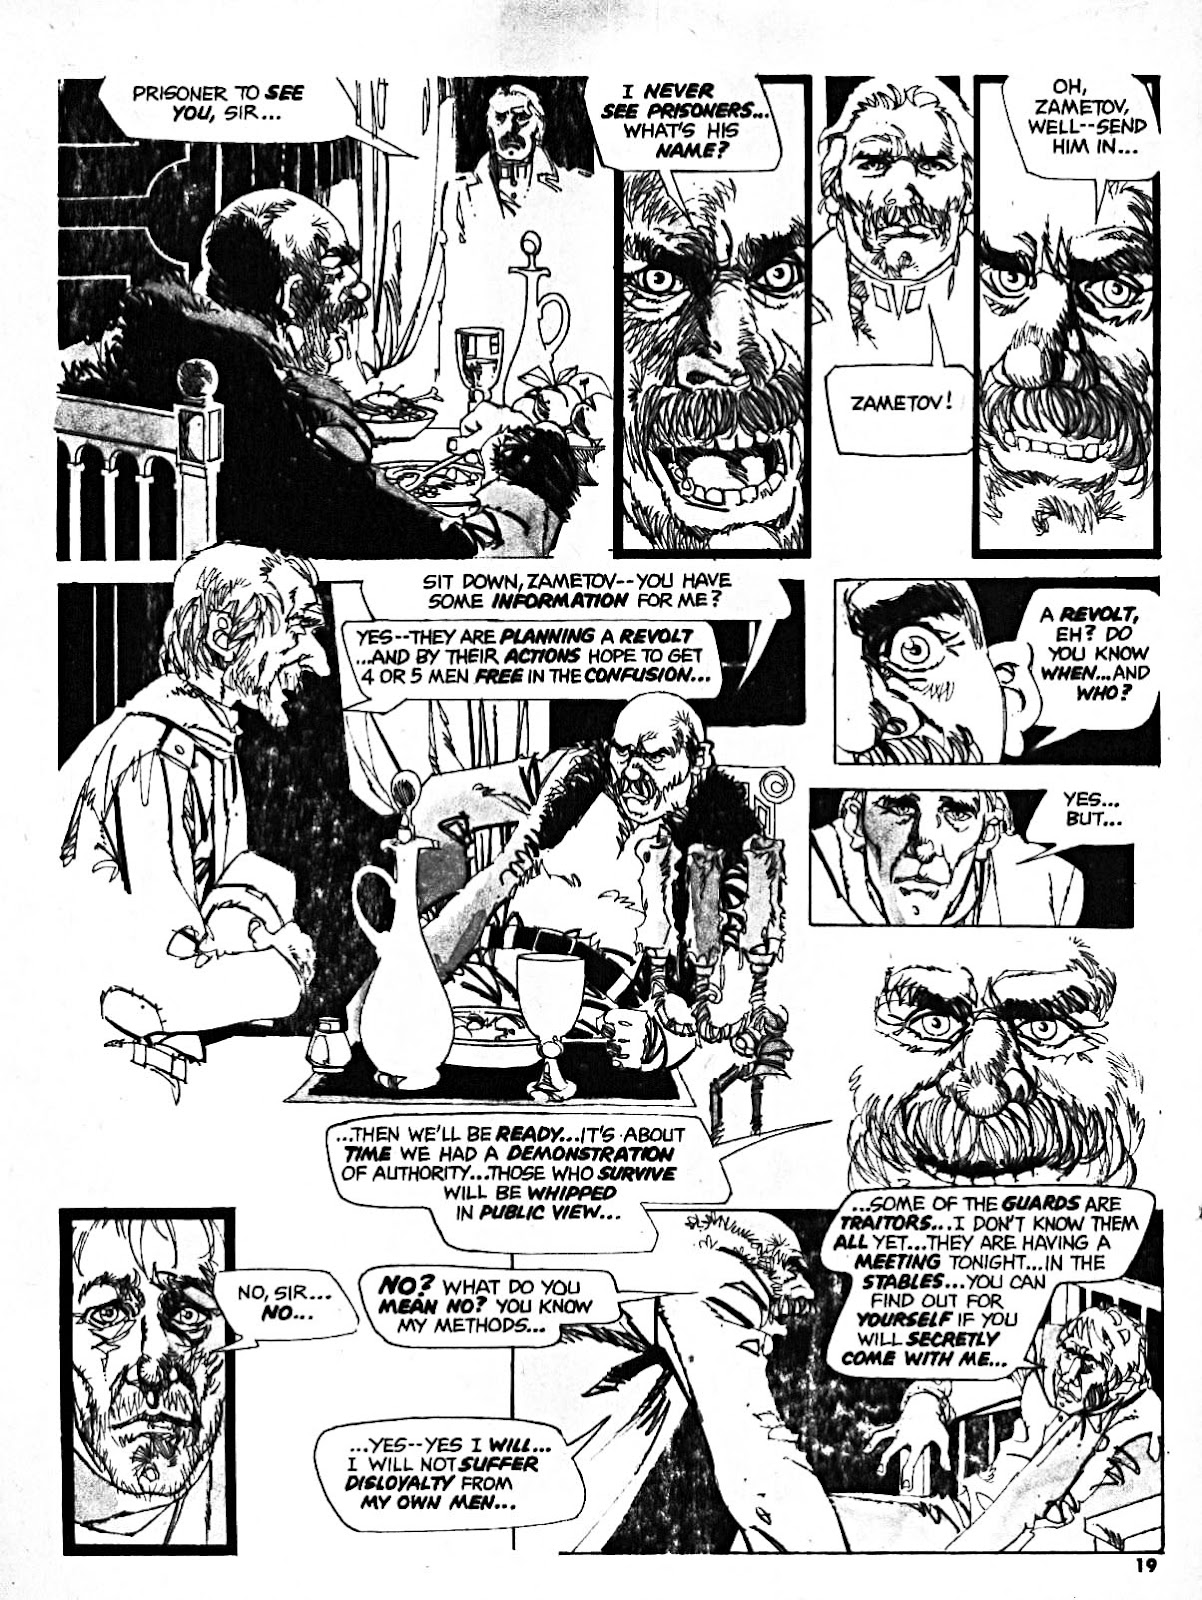 Scream (1973) issue 8 - Page 18